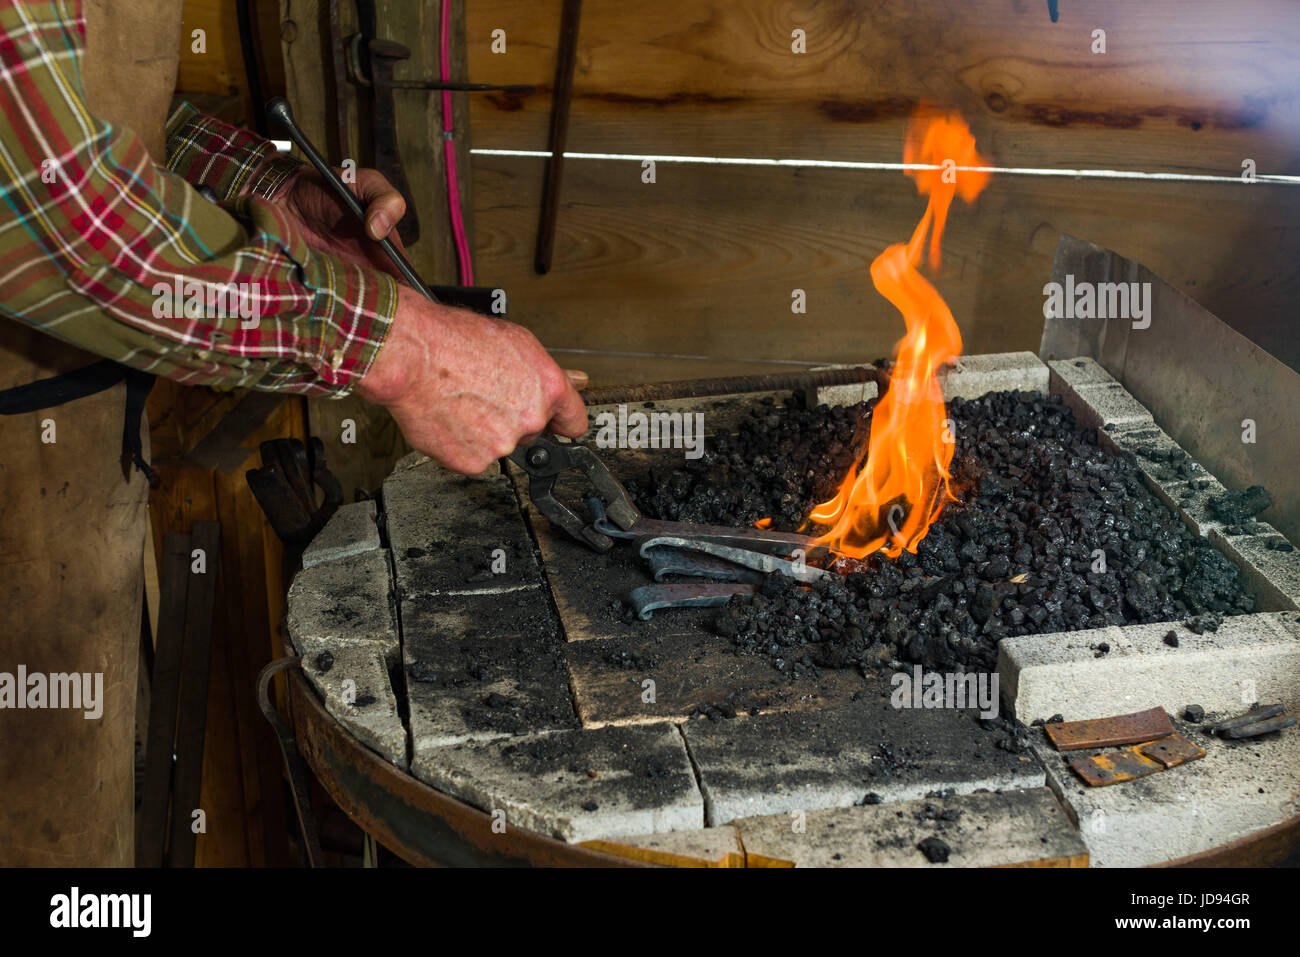 Blacksmith Heating Steel In Charcoal Forge In Workshop - Stock Image